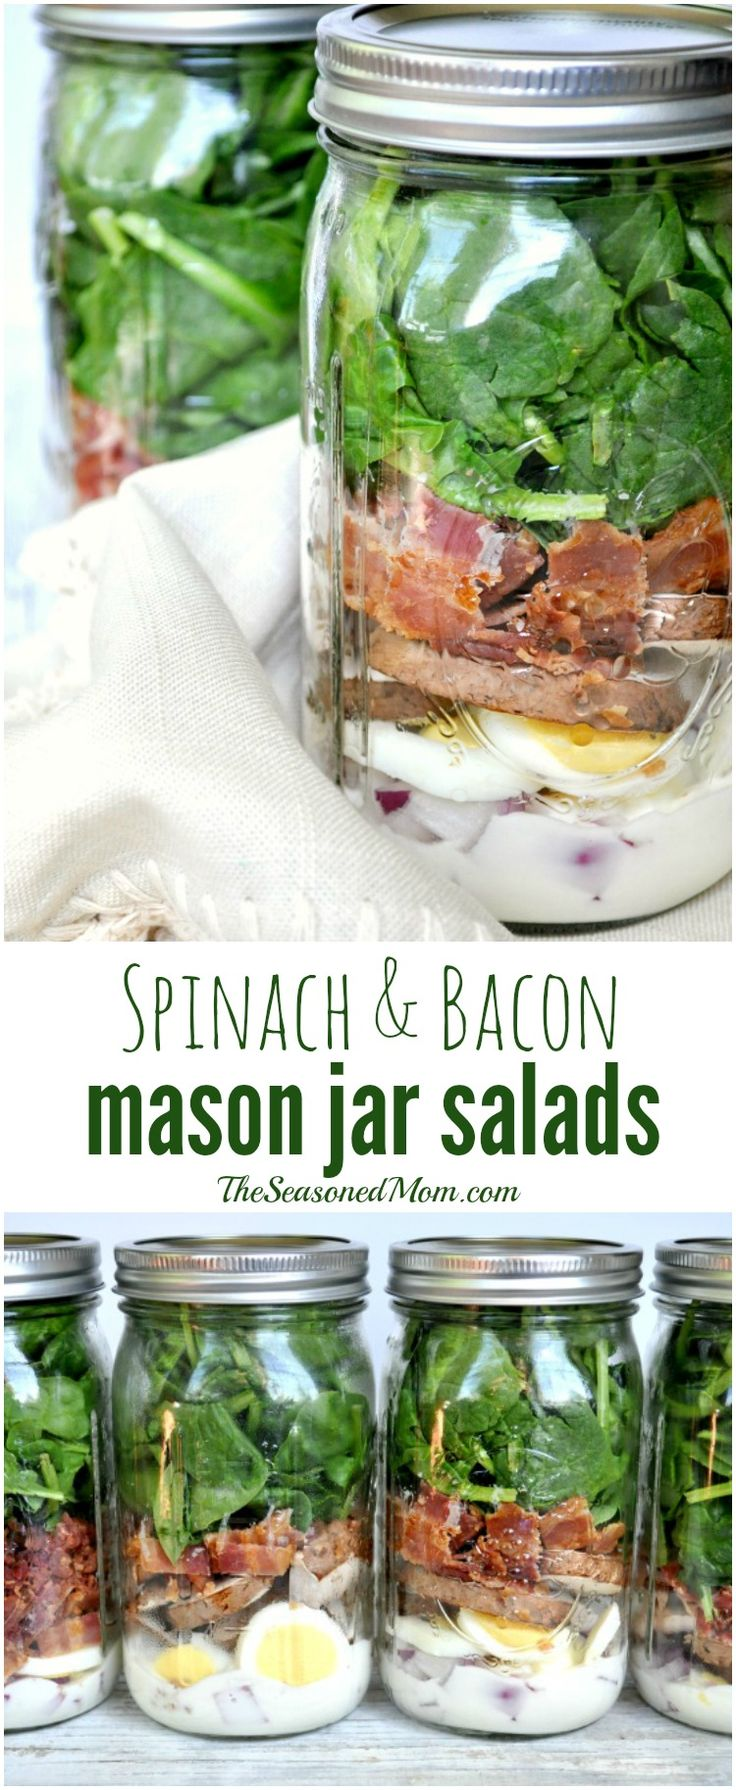 Spinach and bacon mason jar salad.